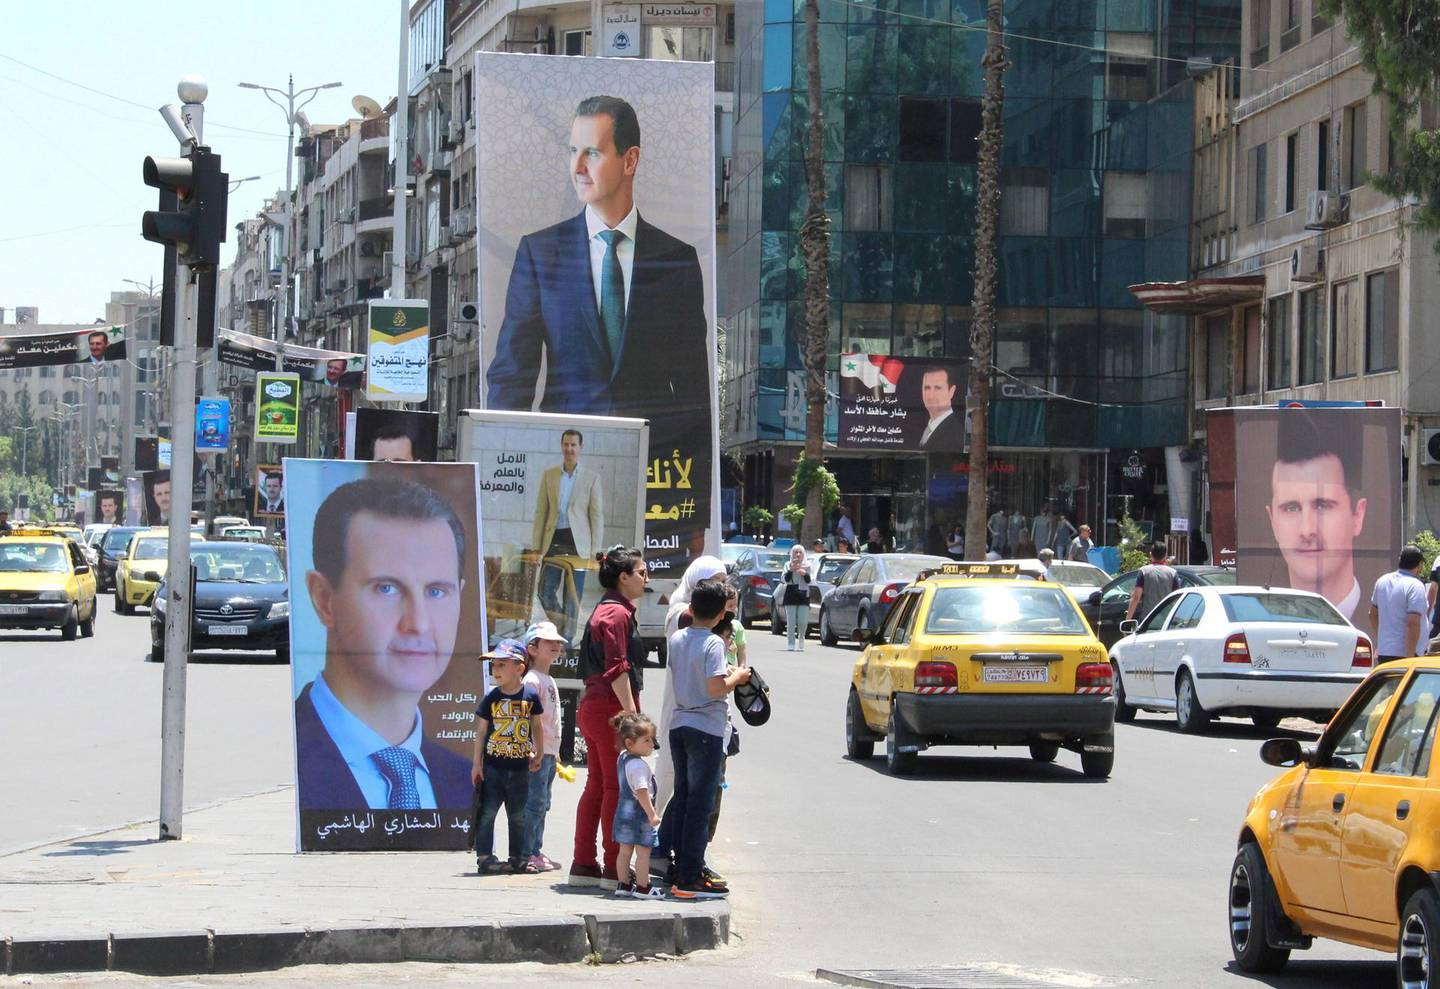 FILE PHOTO: People stand near posters depicting Syria's President Bashar al-Assad, ahead of the May 26 presidential election, in Damascus, Syria May 18, 2021. Picture taken May 18, 2021. REUTERS/Firas Makdesi/File Photo